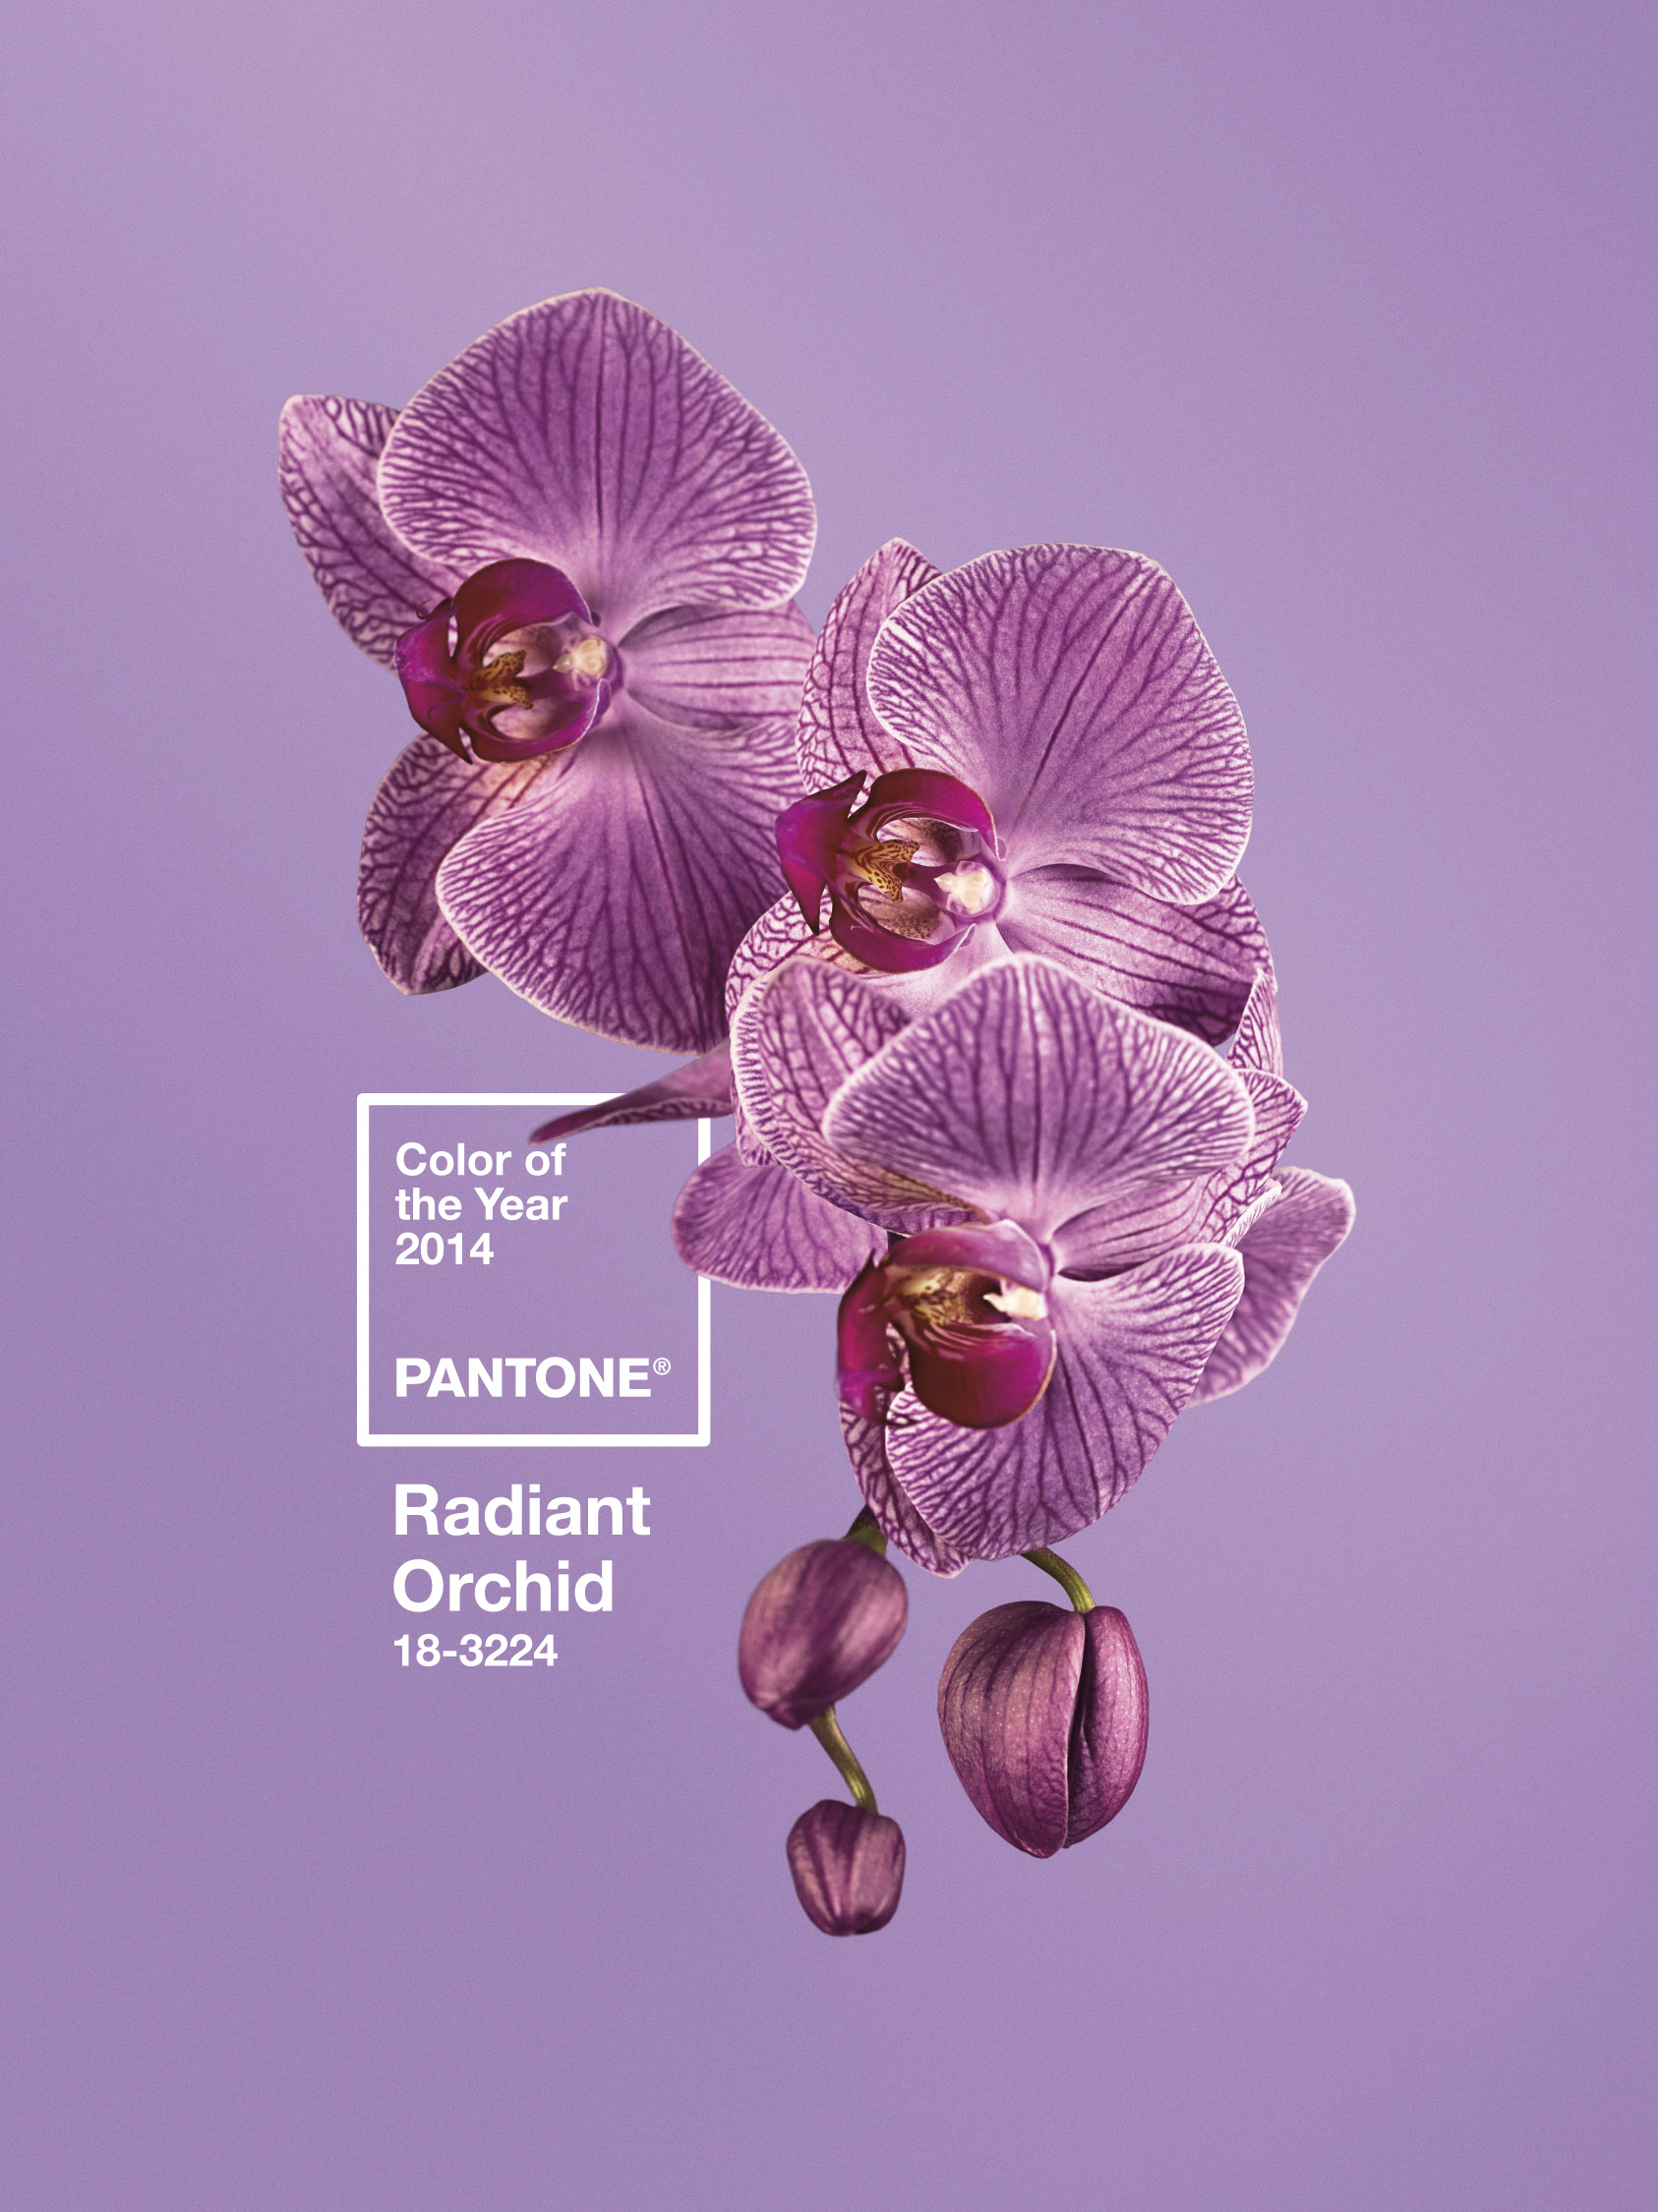 baby boomer fashions, Pantone 2014 Color of the Year, Radiant Orchid, life after 50, over 50